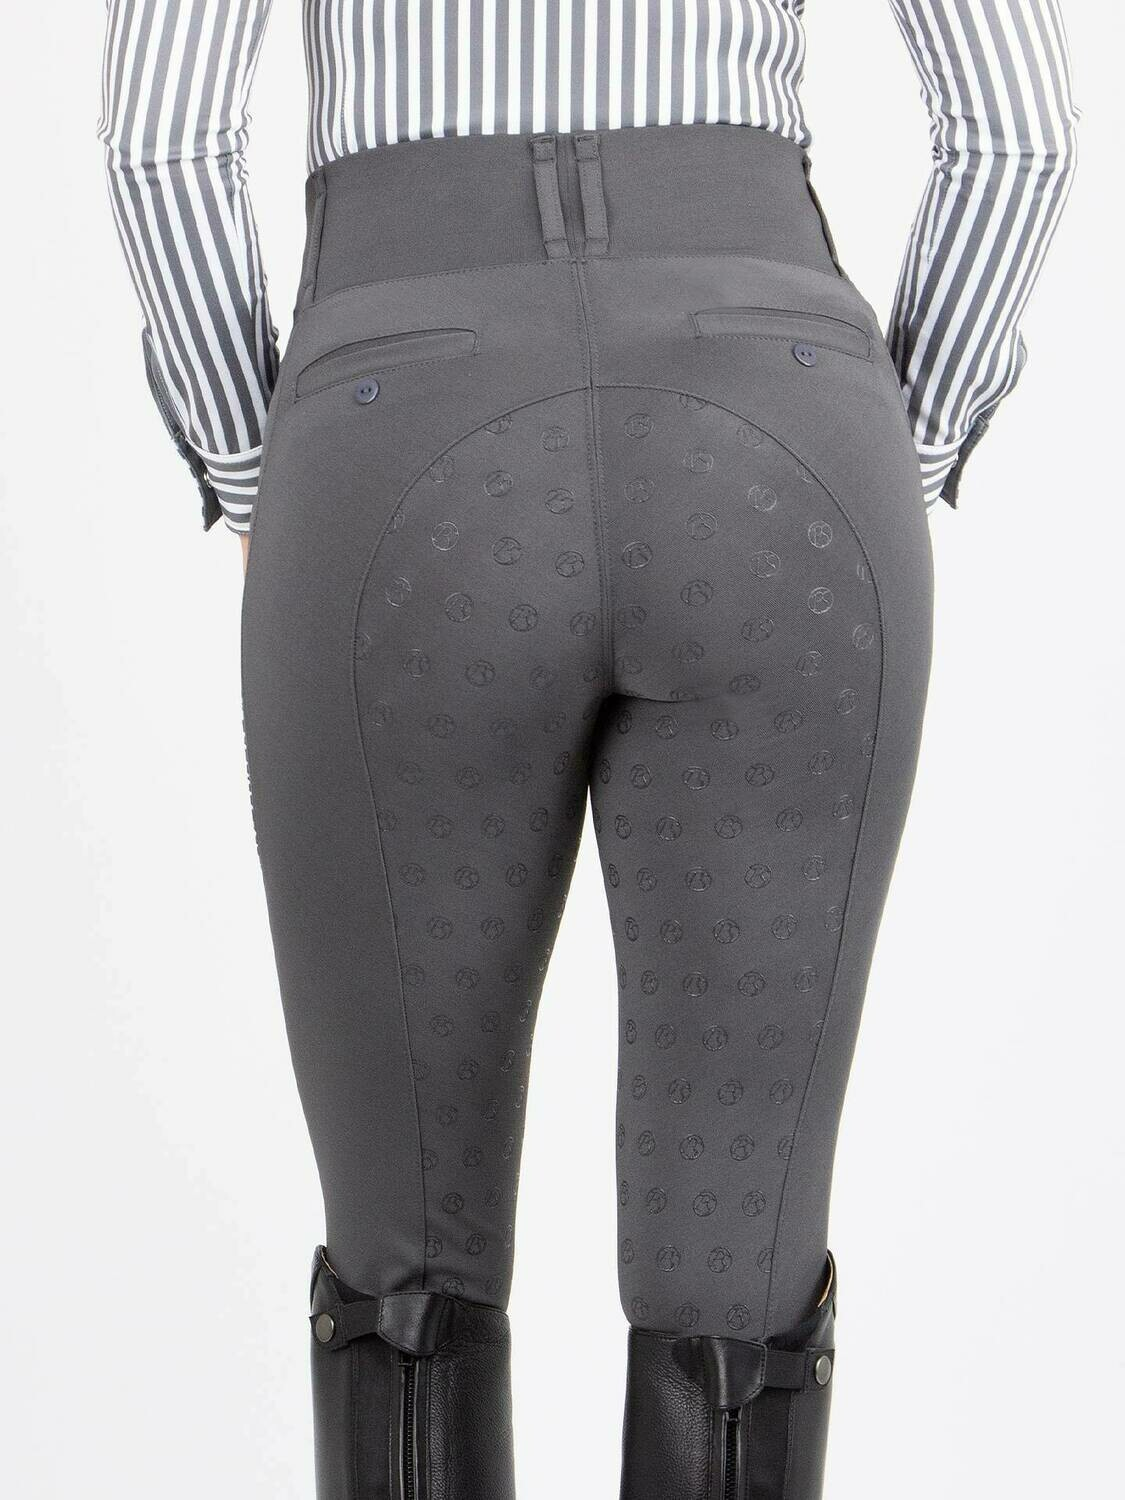 Rijlegging, Mathilde, Grey